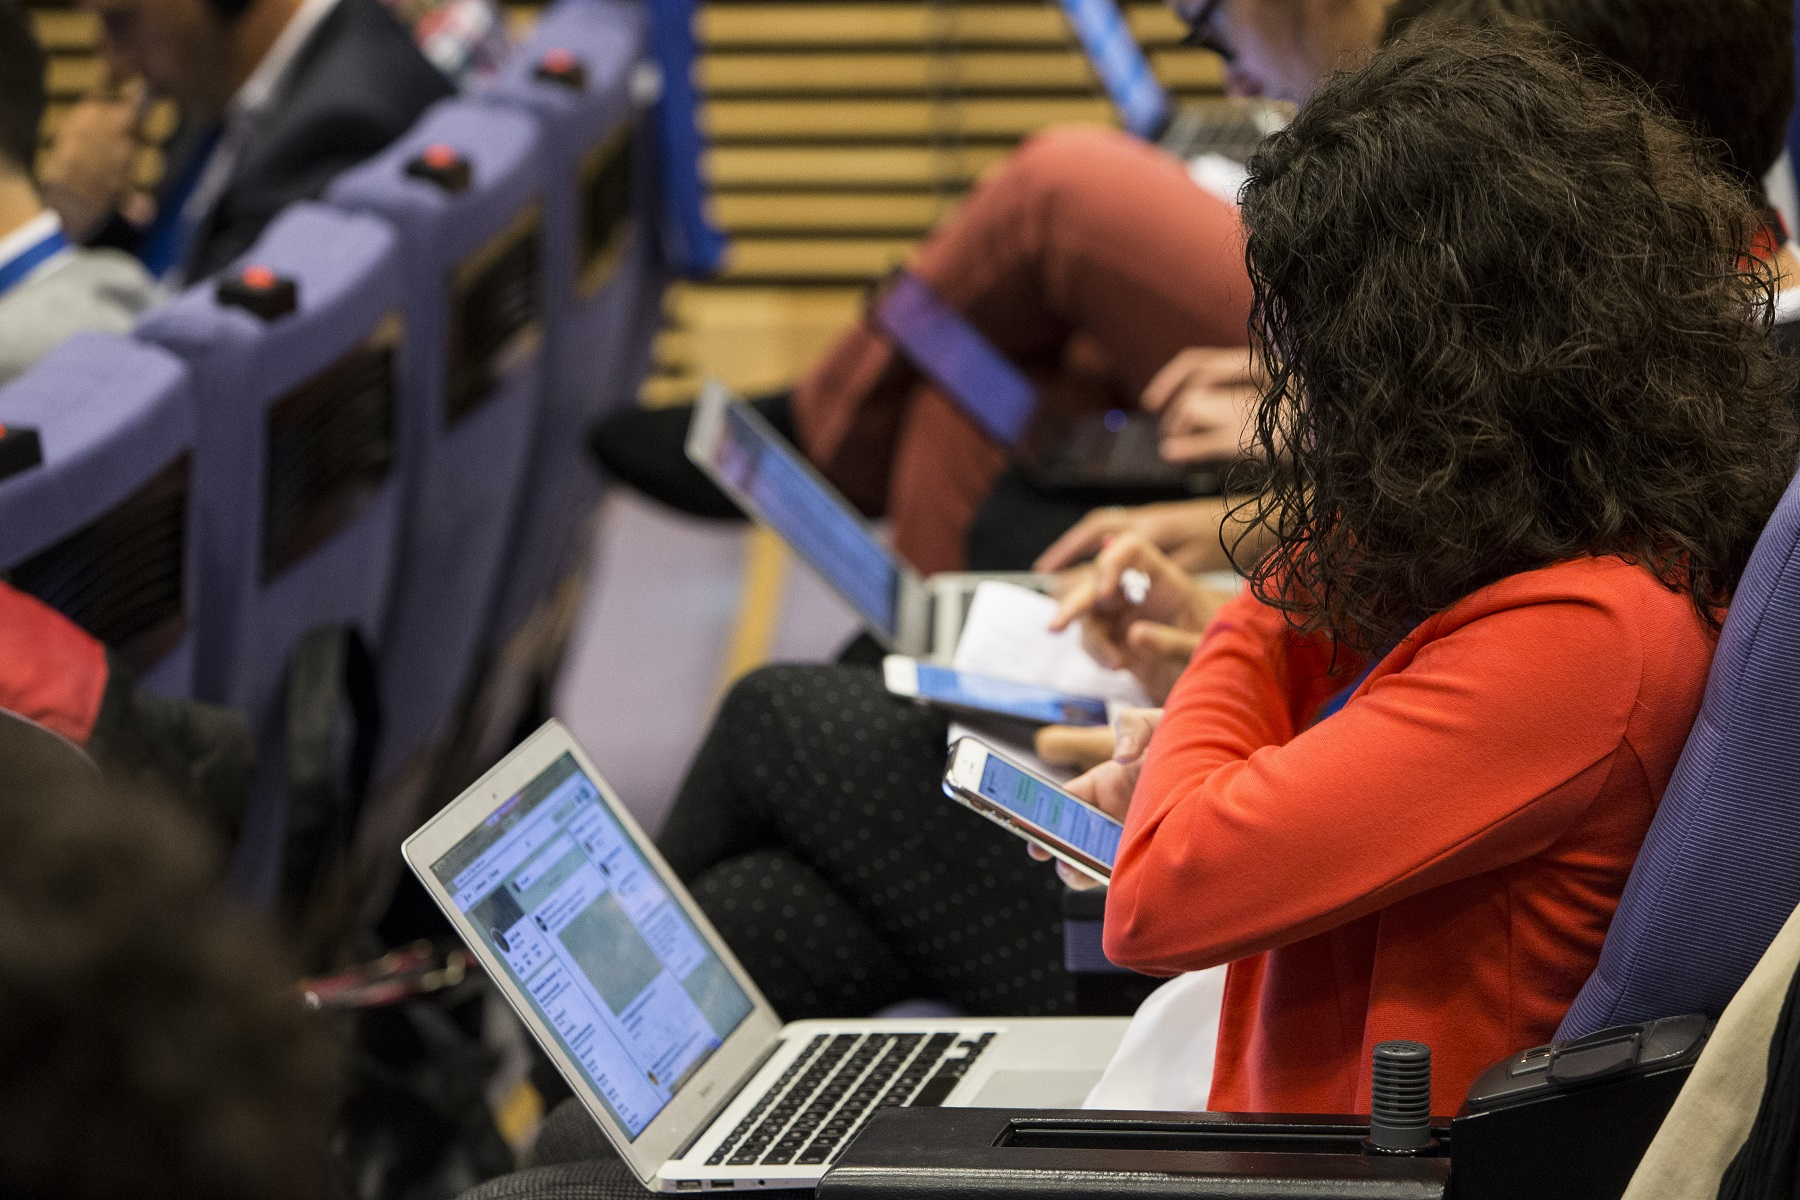 A journalist using her smartphone, with a laptop on her lap